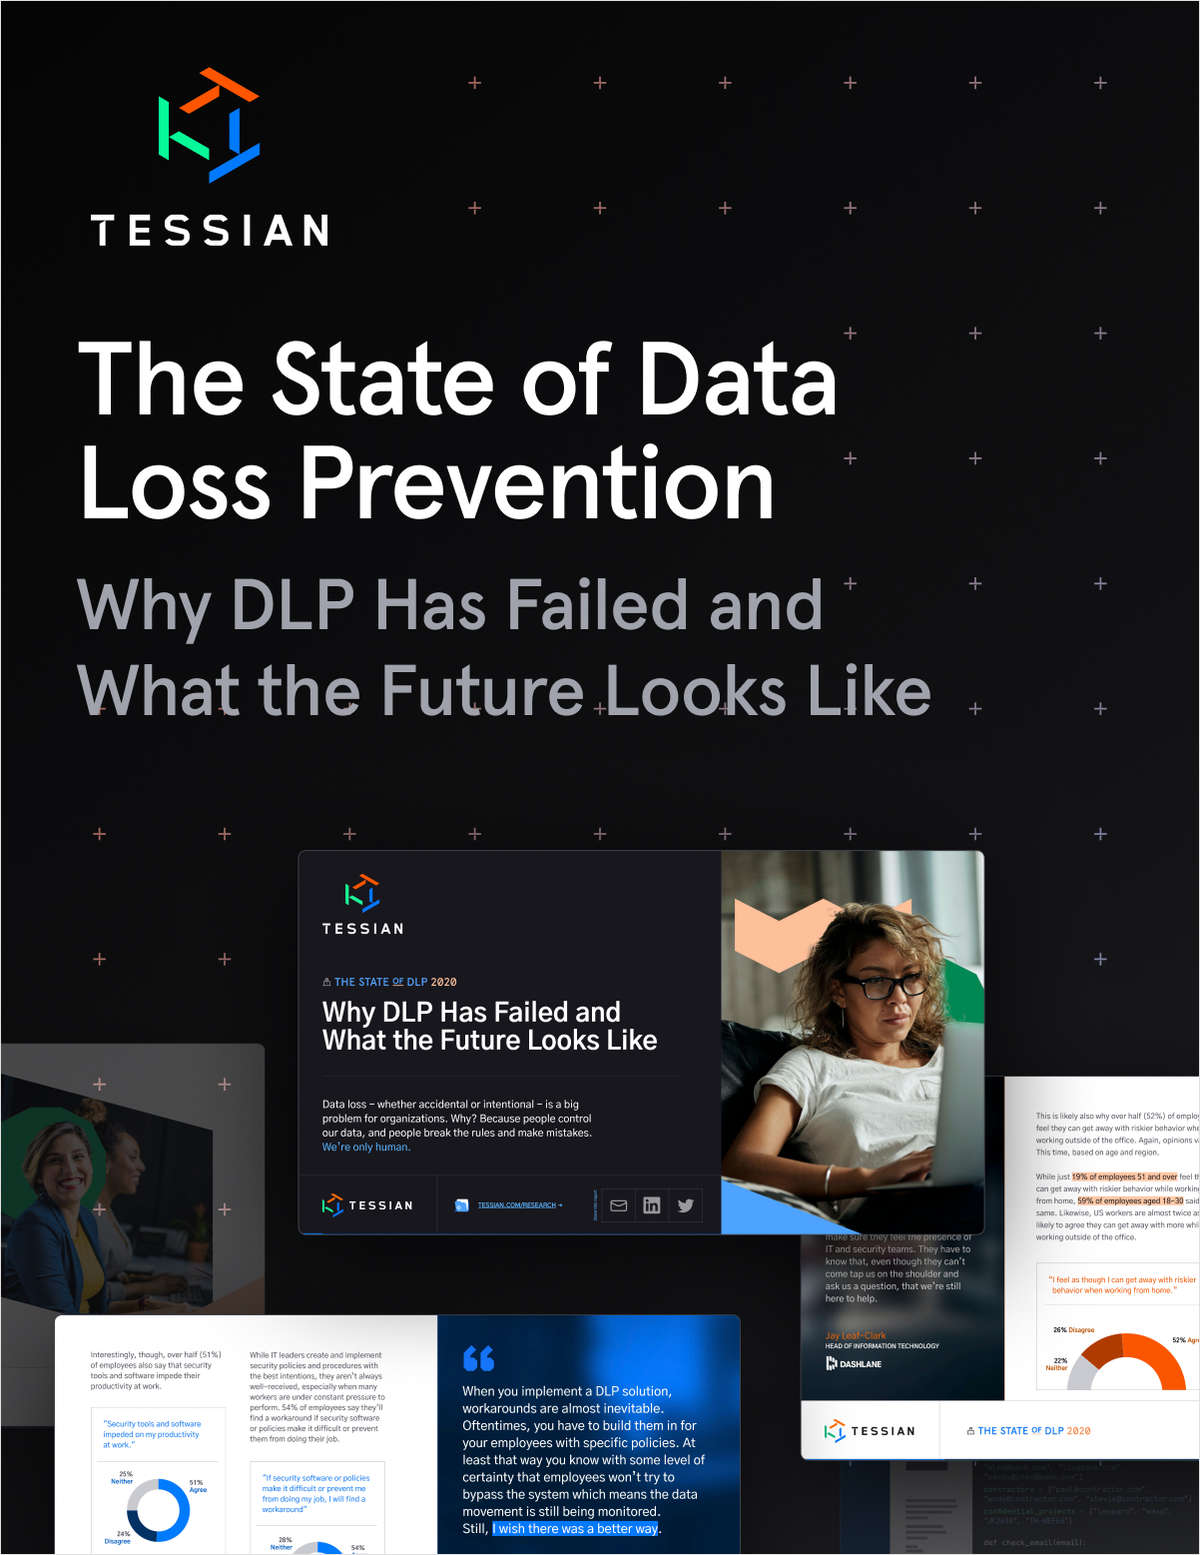 The State of Data Loss Prevention: Why DLP has failed and what the future looks like